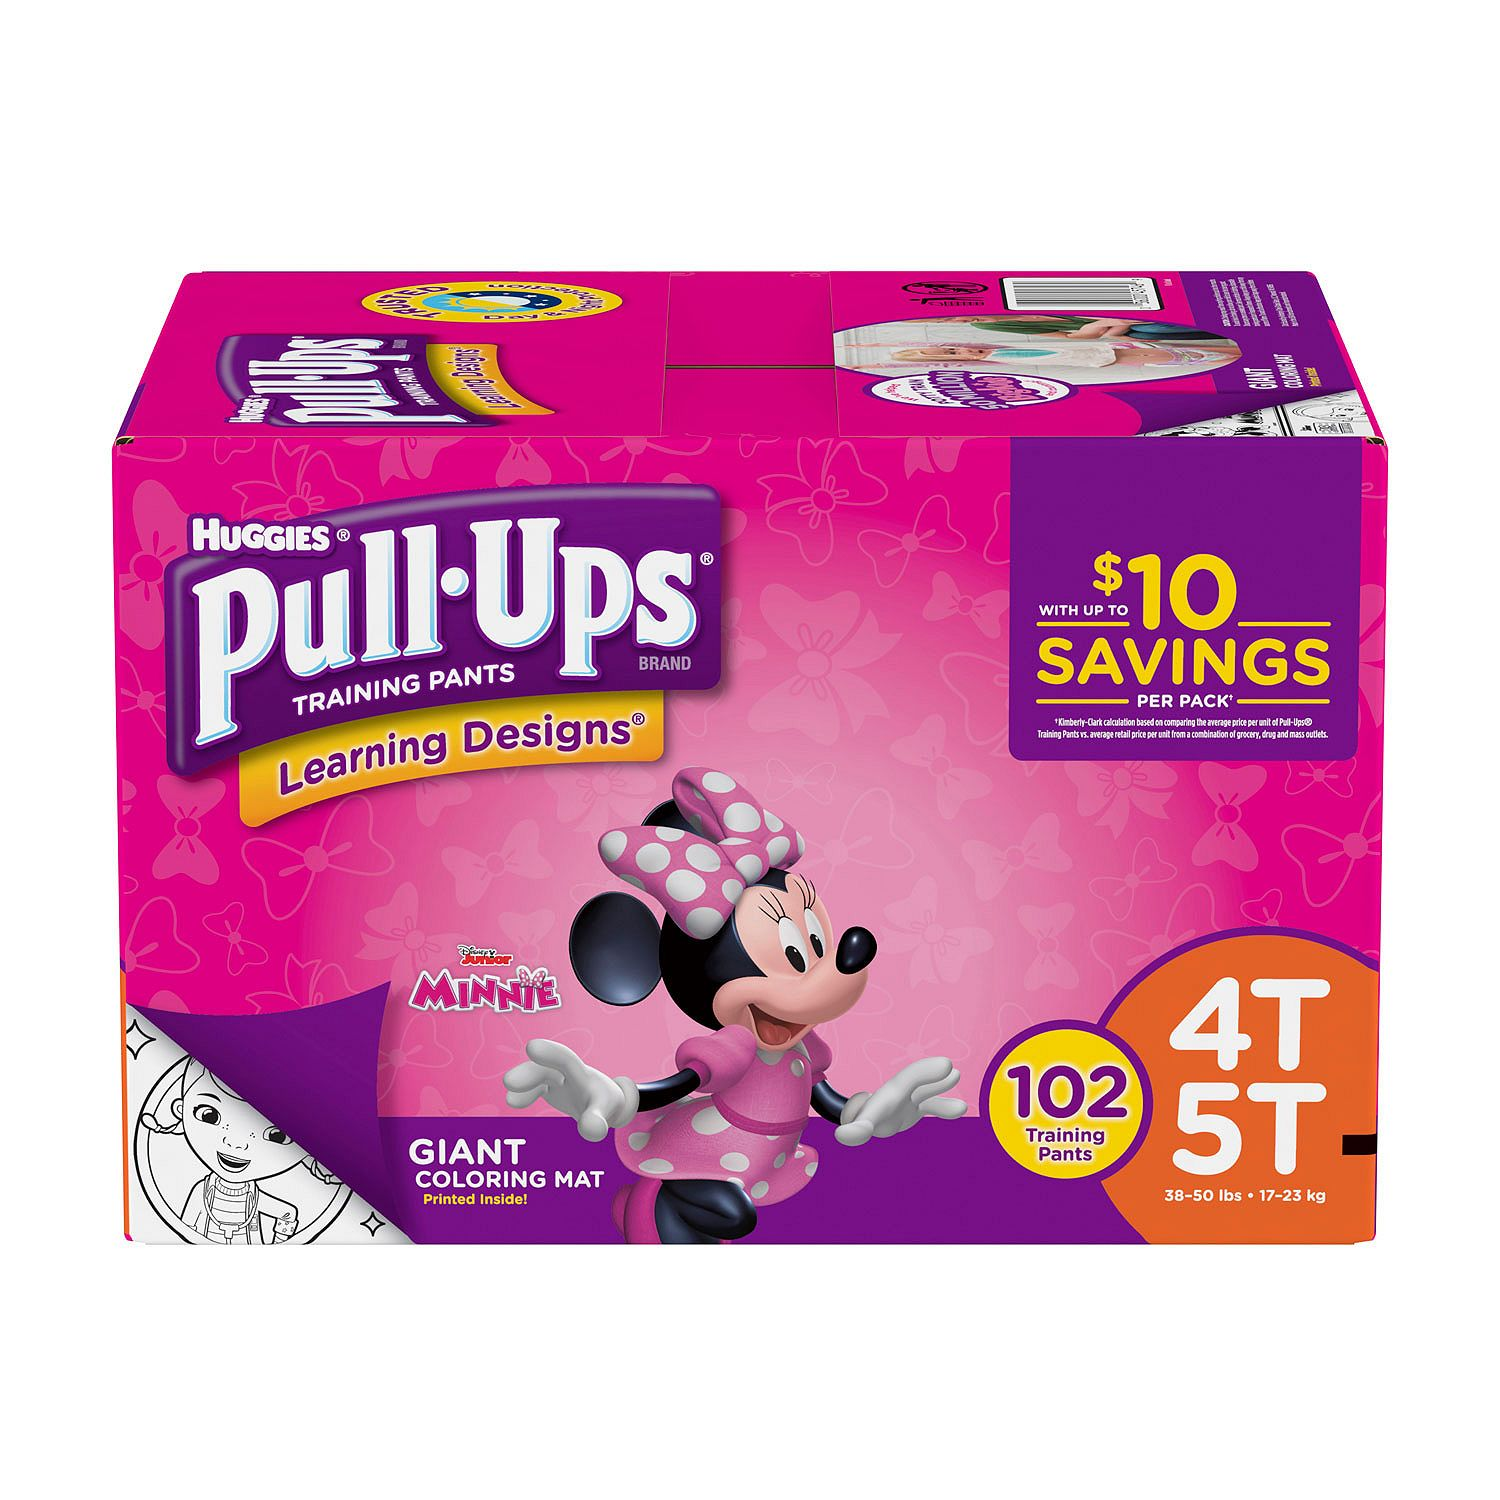 Huggies Pull-ups Training Pants for Girls Size 4T/5T ( Weight 102 ct.) - Bulk Qty, Free Shipping - Comfortable, Soft, No leaking & Good nite Training Pants